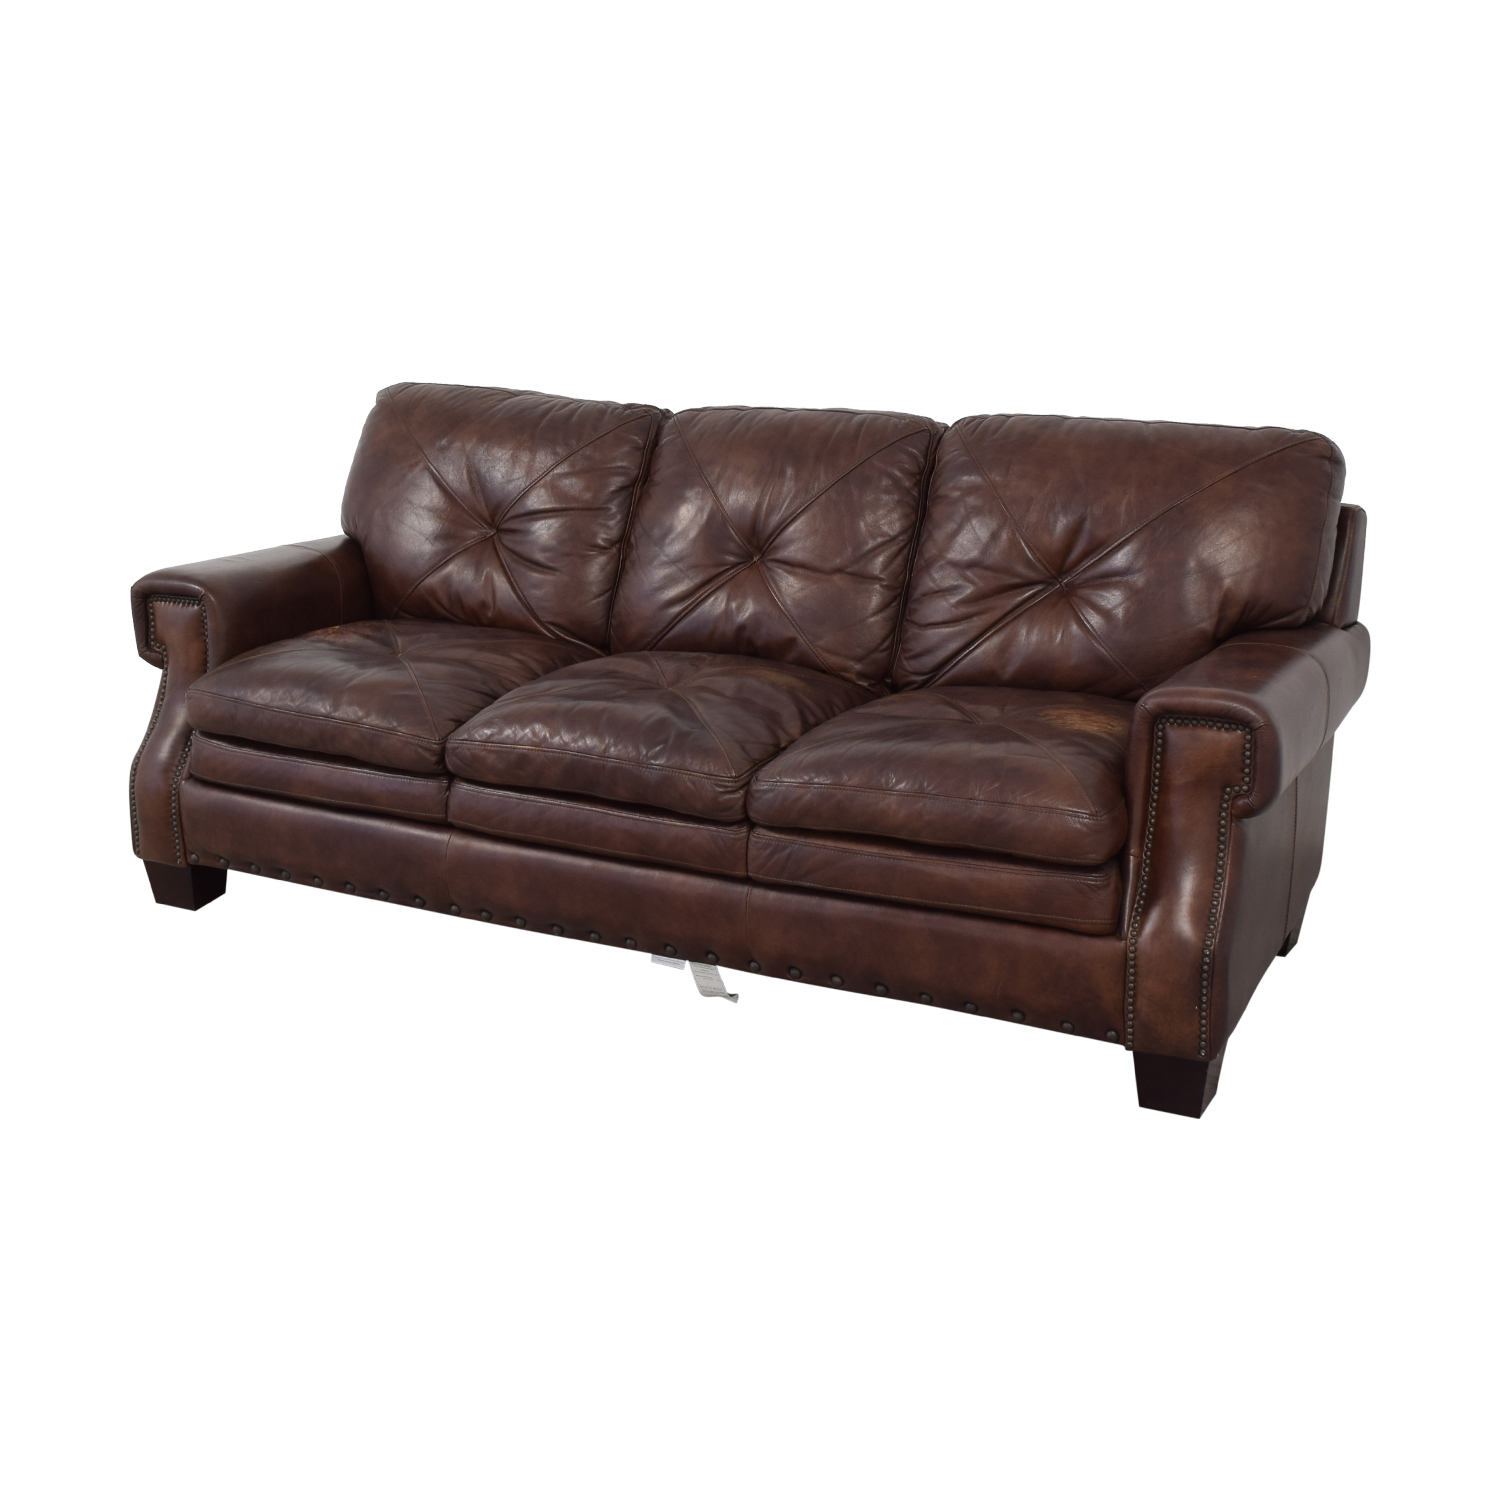 89 Off Bob S Discount Furniture Bob S Discount Furniture Kennedy Leather Sofa Sofas